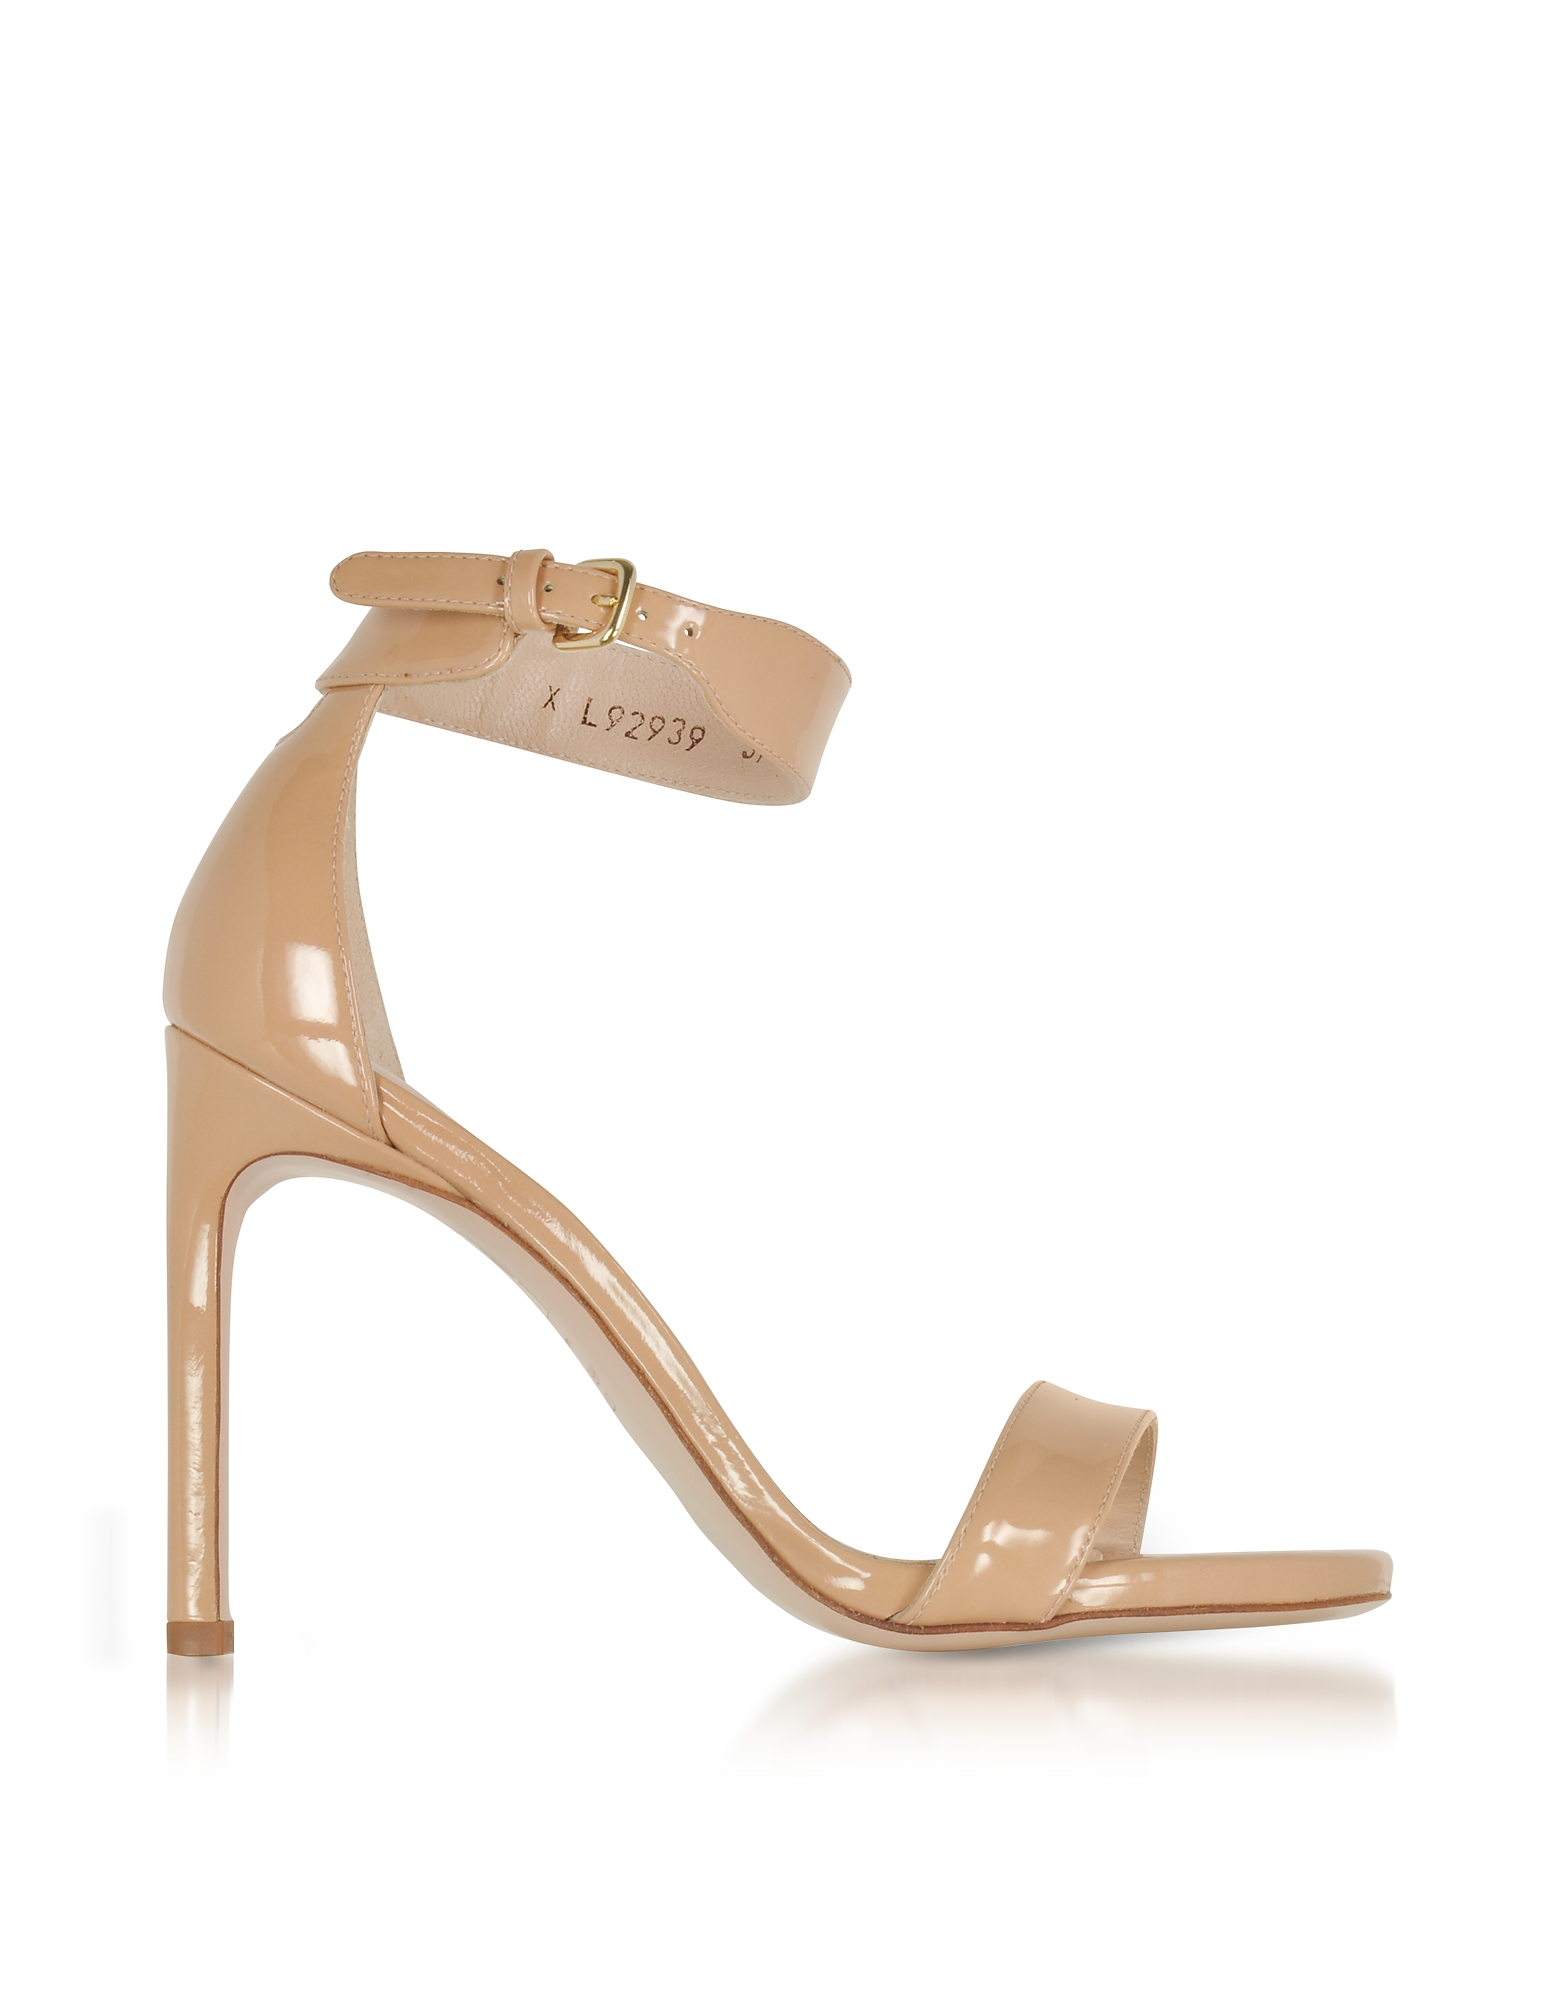 Stuart Weitzman Shoes, Backup Tiz Adobe Aniline Nude Patent Leather Sandals